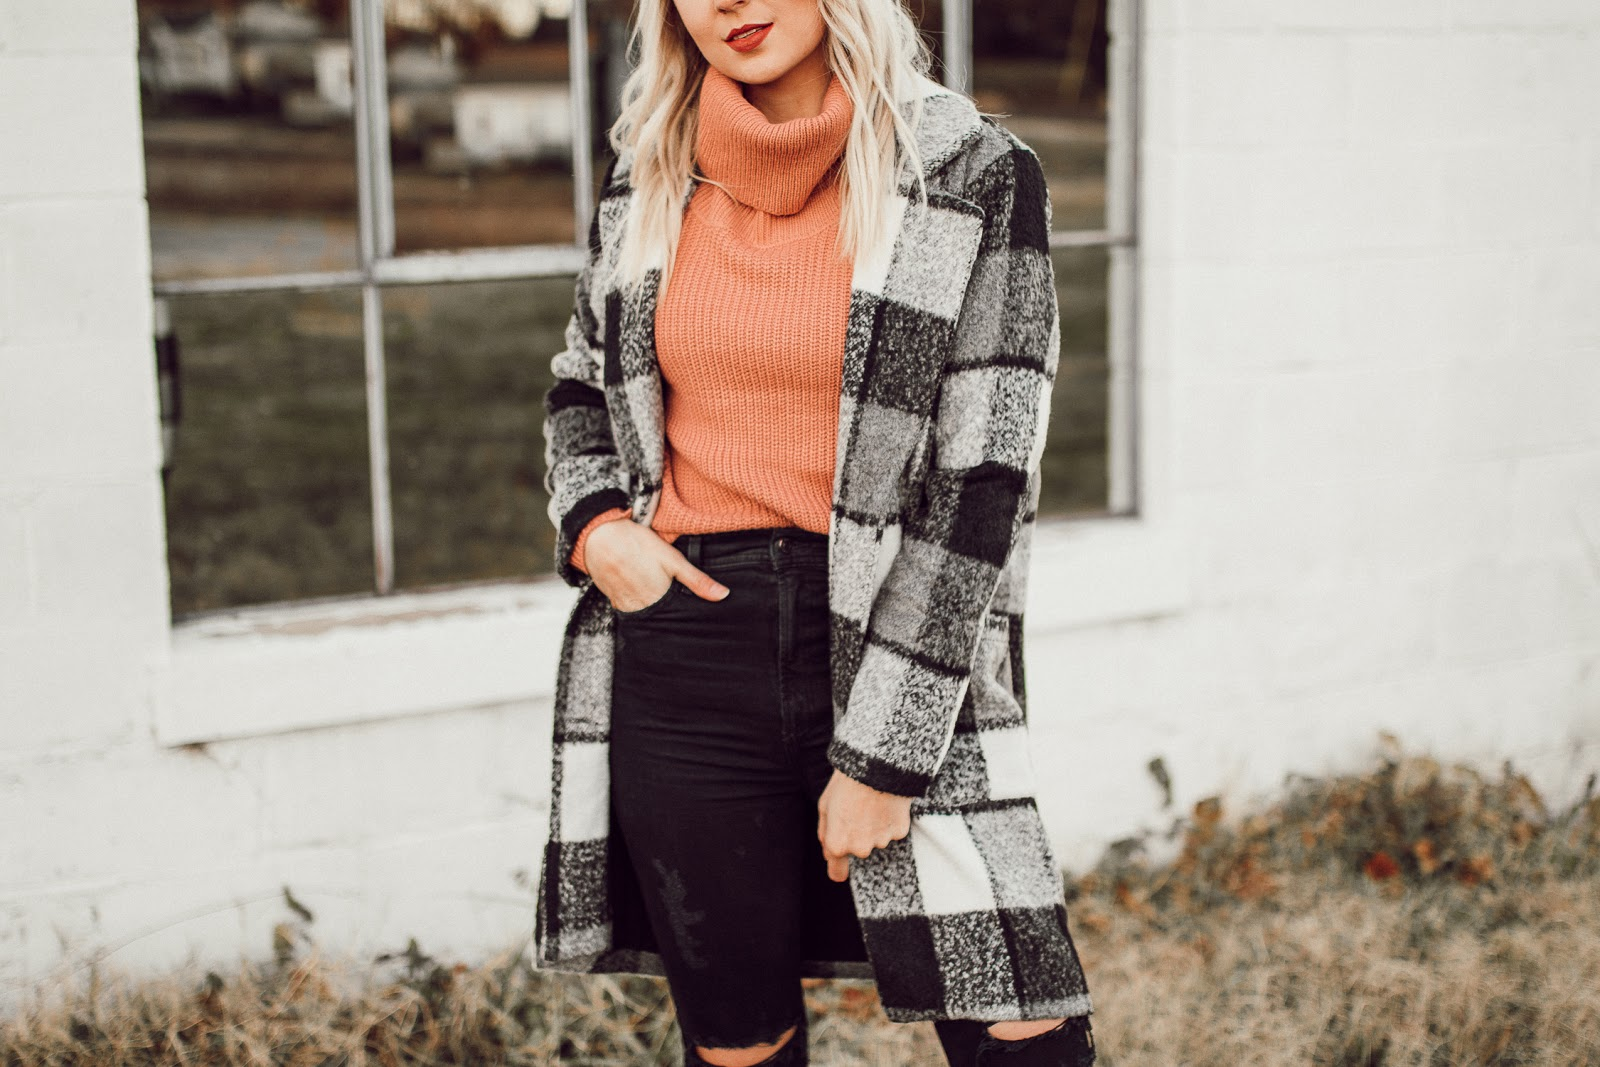 plaid coat over a turtleneck sweater